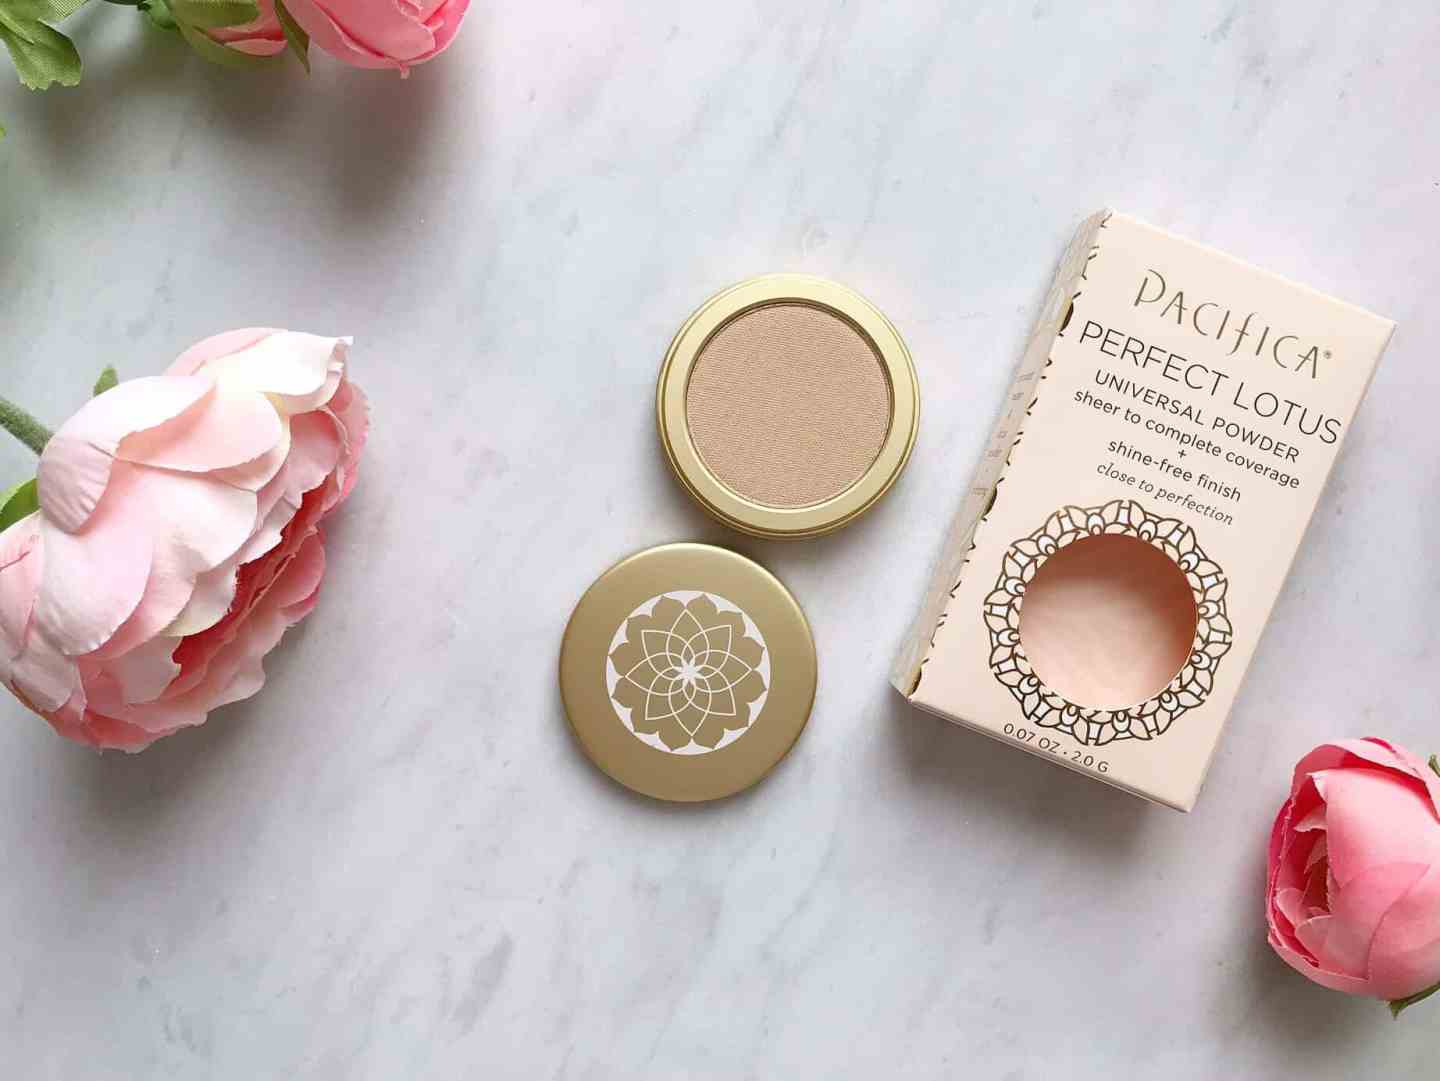 How To Get a Natural Base in Three steps using Pacifica Perfect Lotus Universal Powder